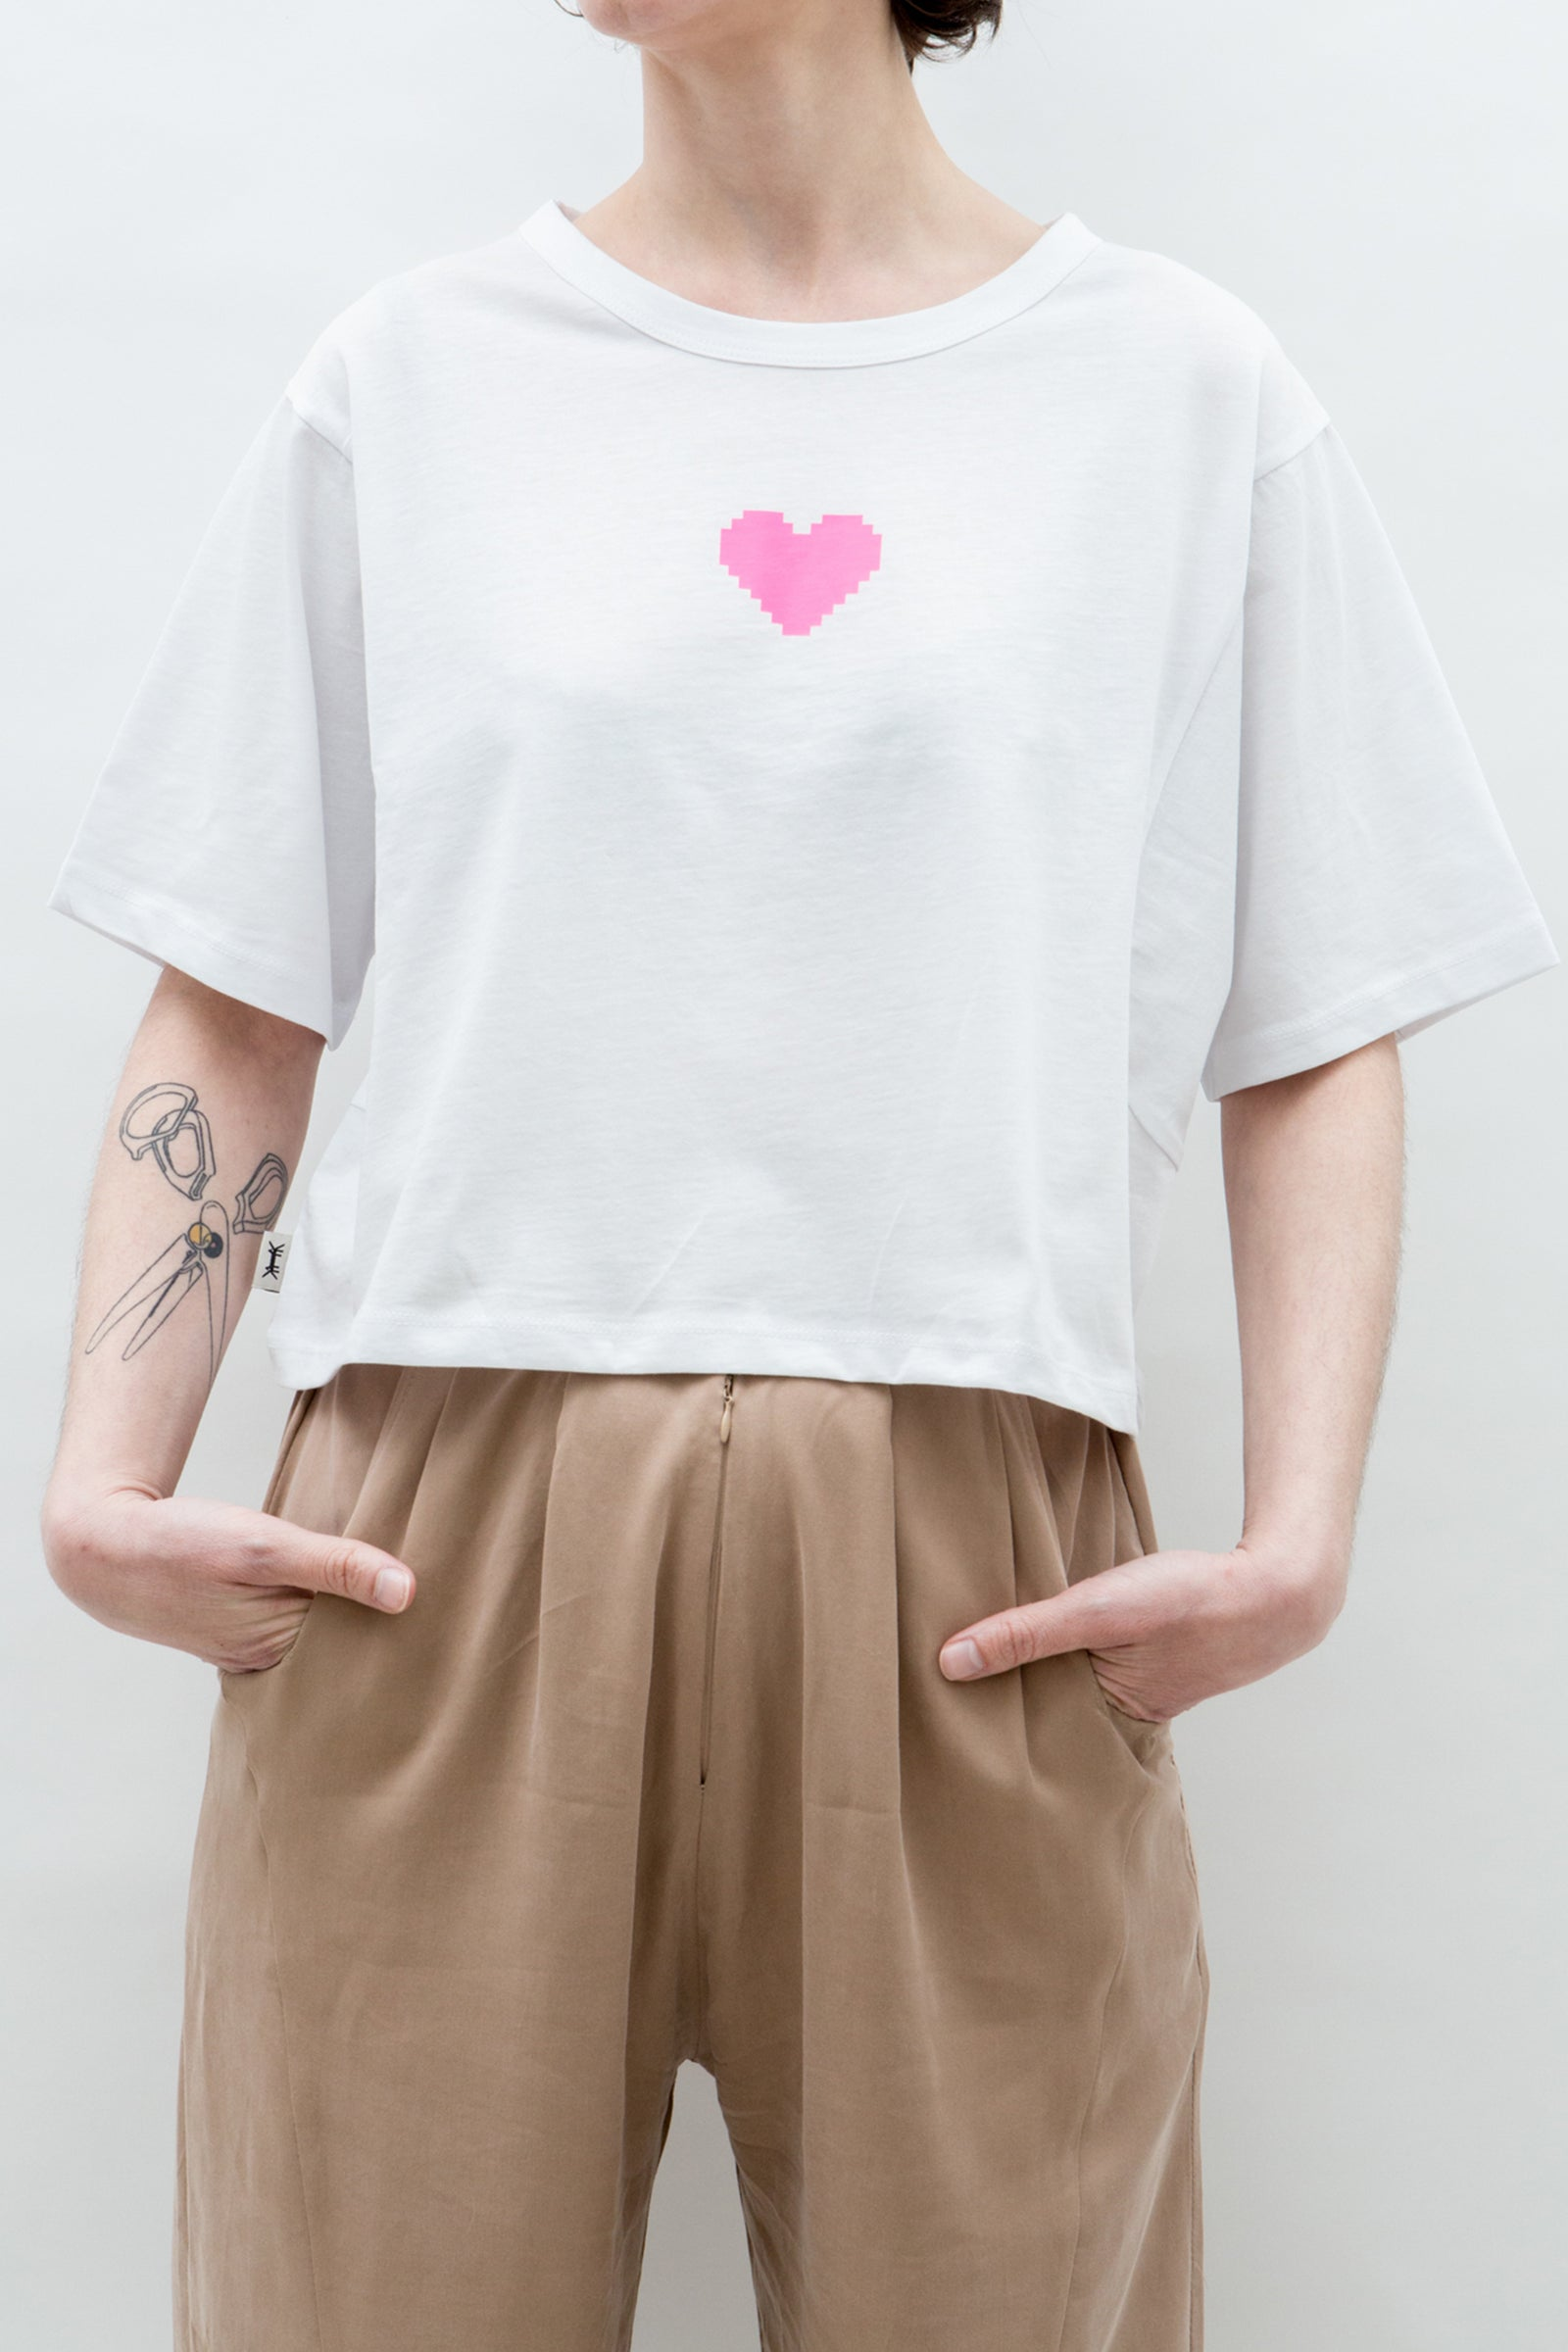 AM Cropped T-Shirt PixeLove Heart